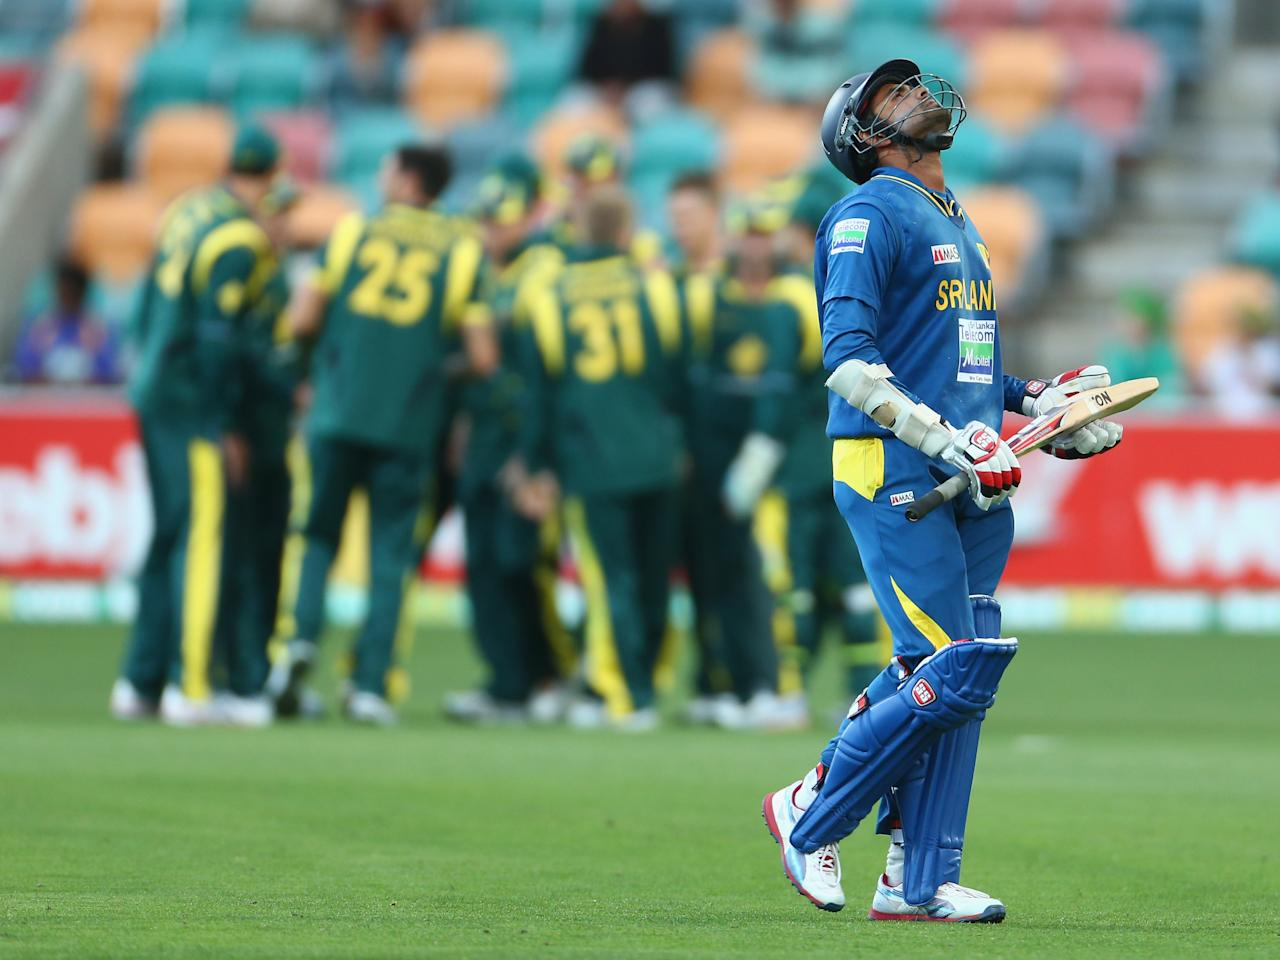 HOBART, AUSTRALIA - JANUARY 23: Lahiru Thirimanne of Sri Lanka walks from the ground after he was caught out during game five of the Commonwealth Bank One Day International Series between Australia and Sri Lanka at Blundstone Arena on January 23, 2013 in Hobart, Australia.  (Photo by Robert Cianflone/Getty Images)